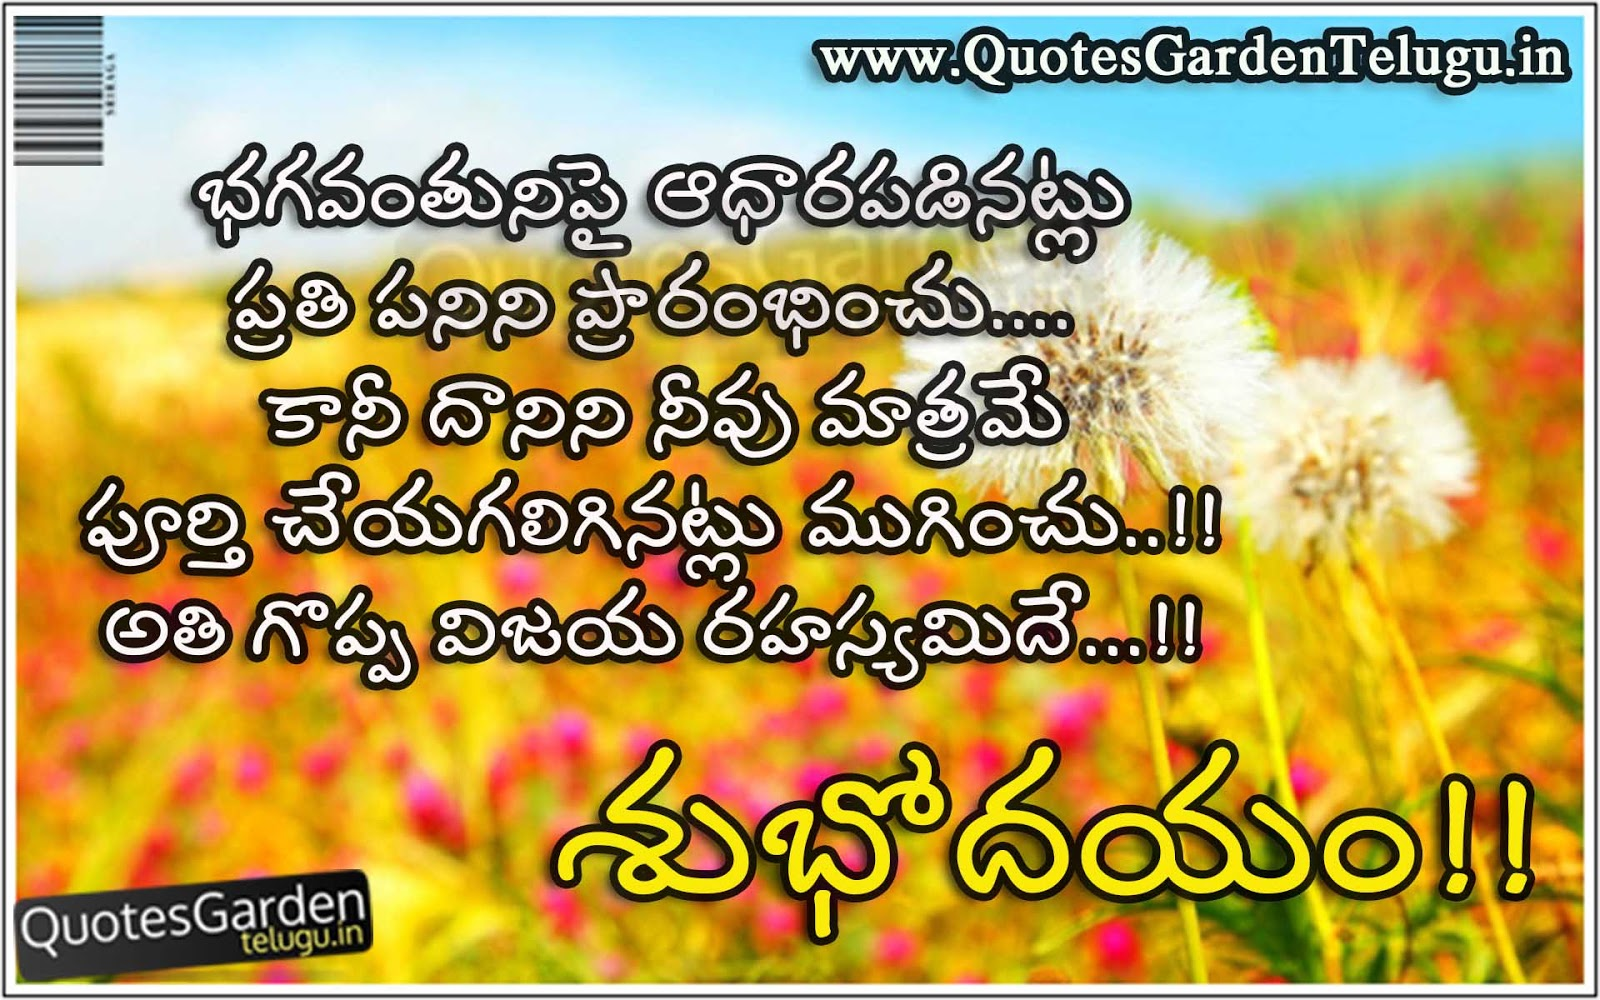 Latest Telugu Good Morning Quotes Messages Greetings Quotes Garden